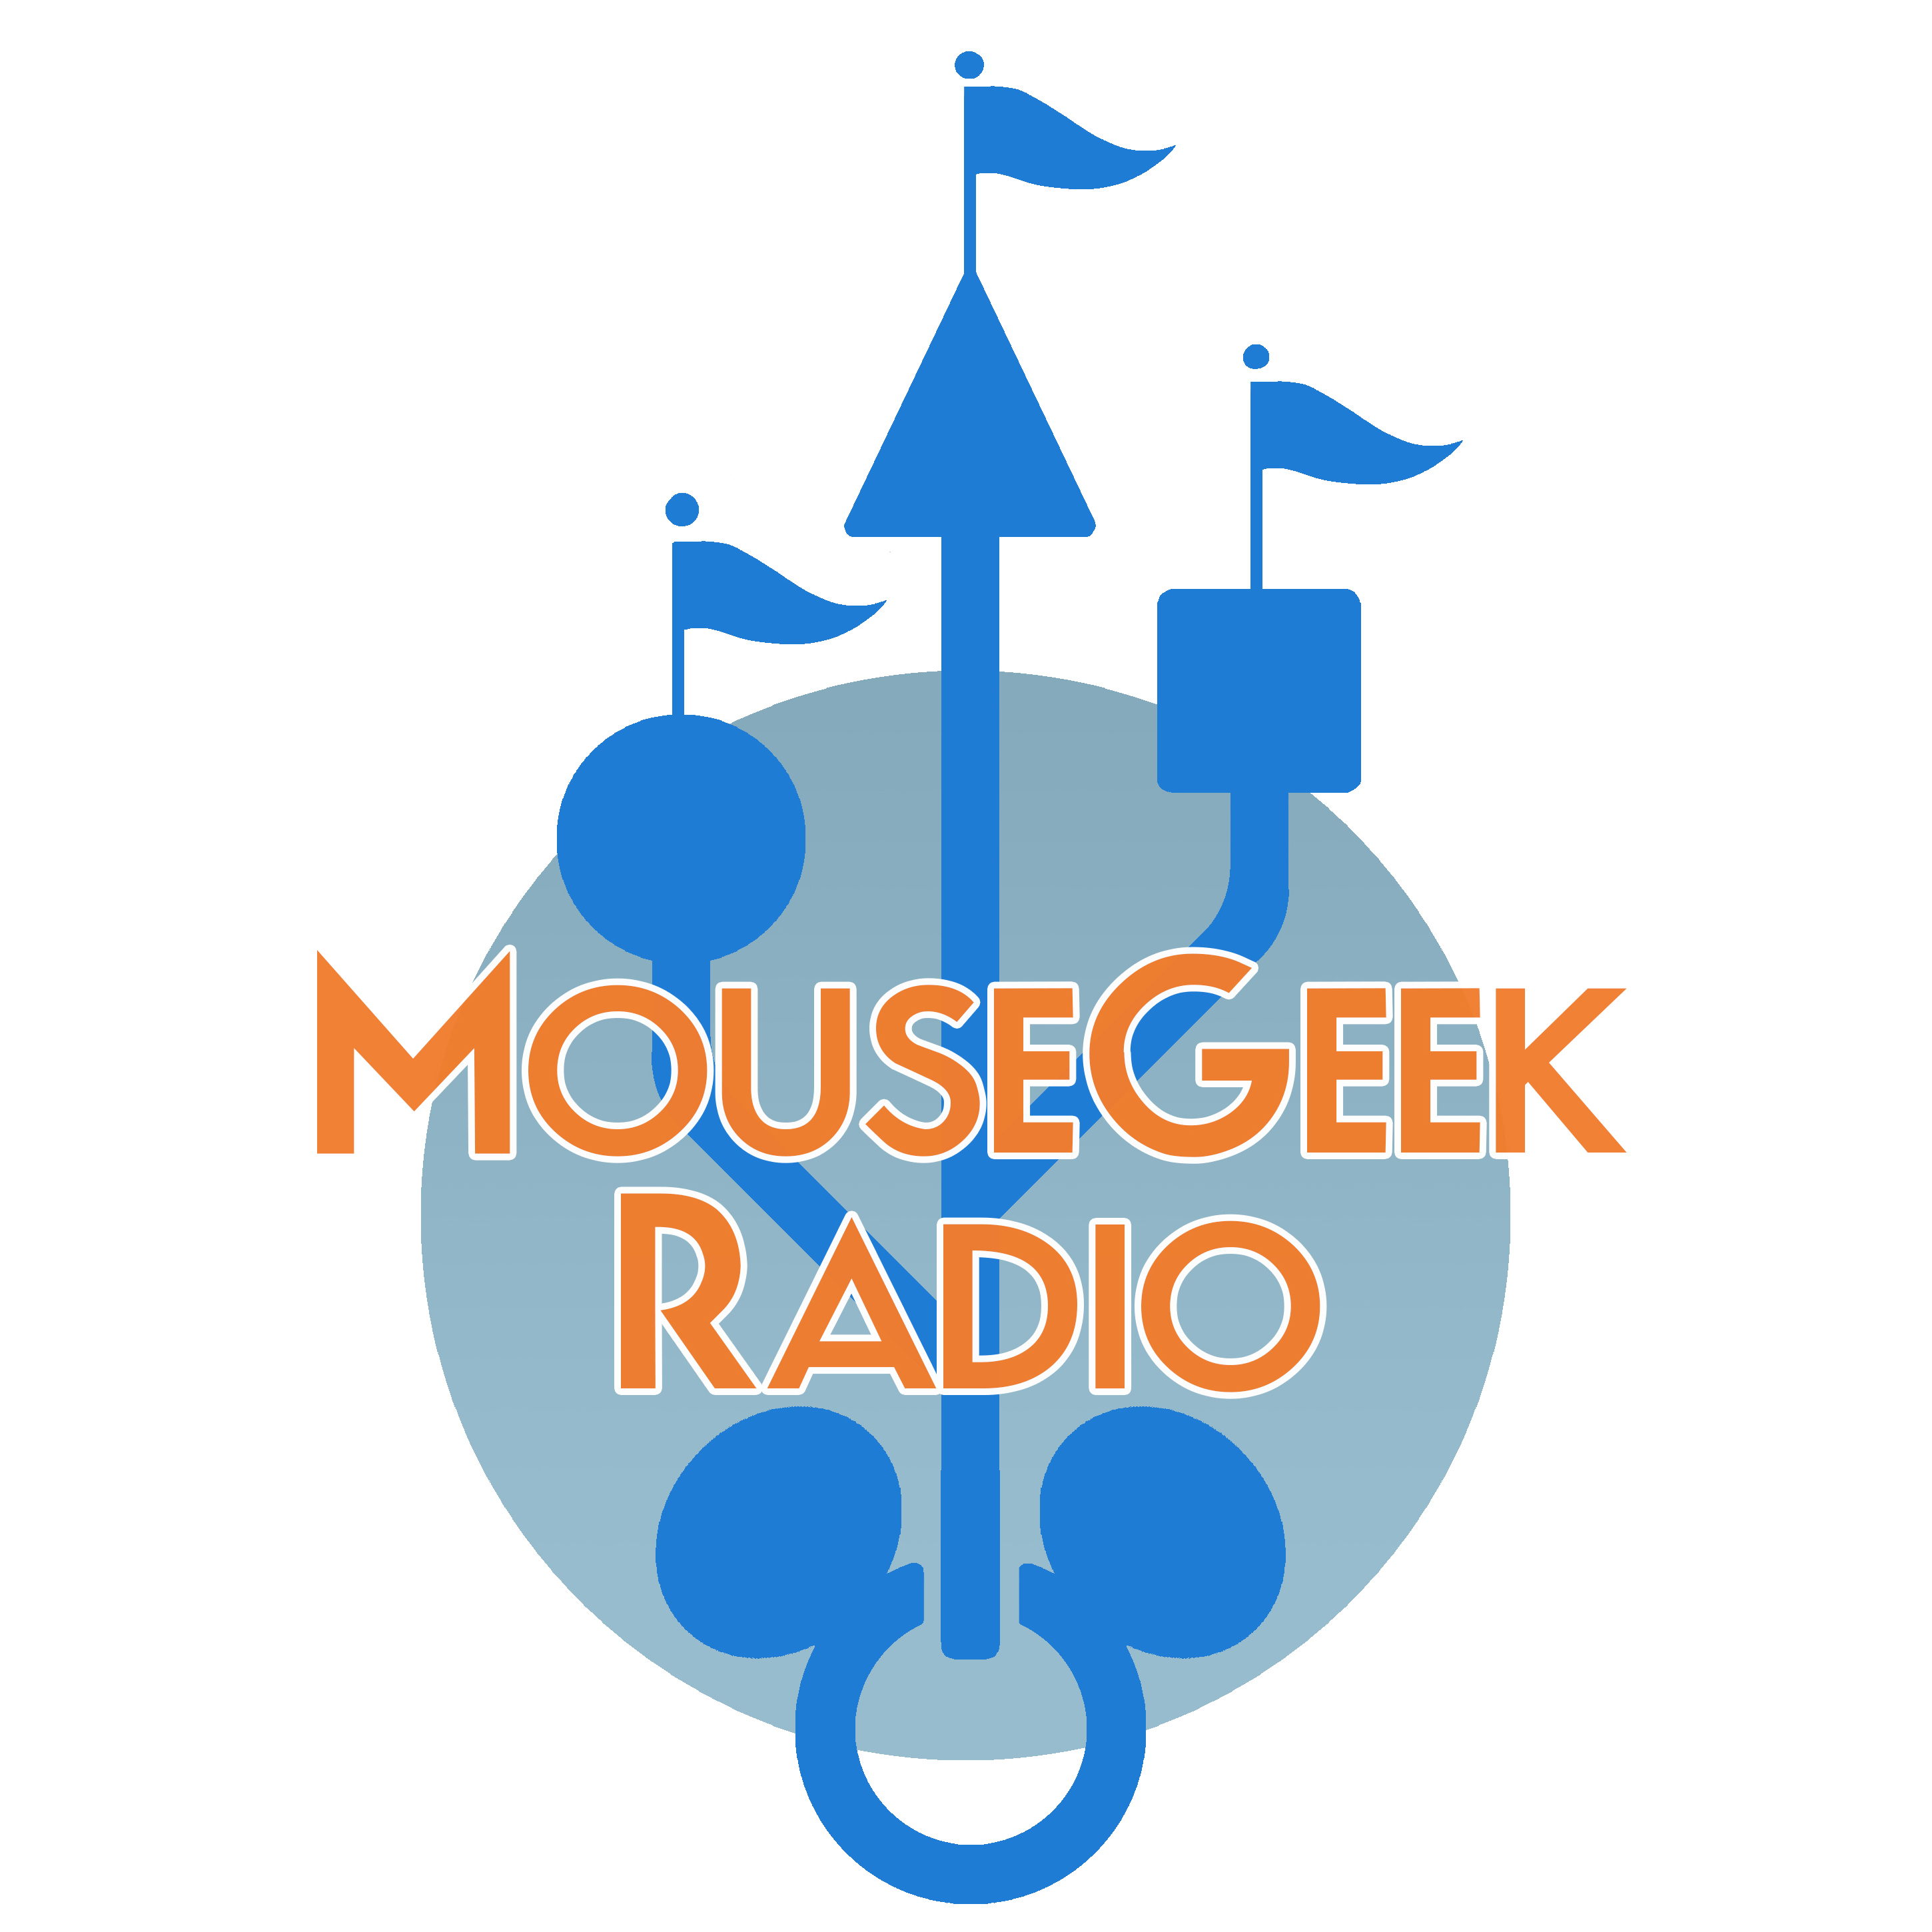 MouseGeek Radio